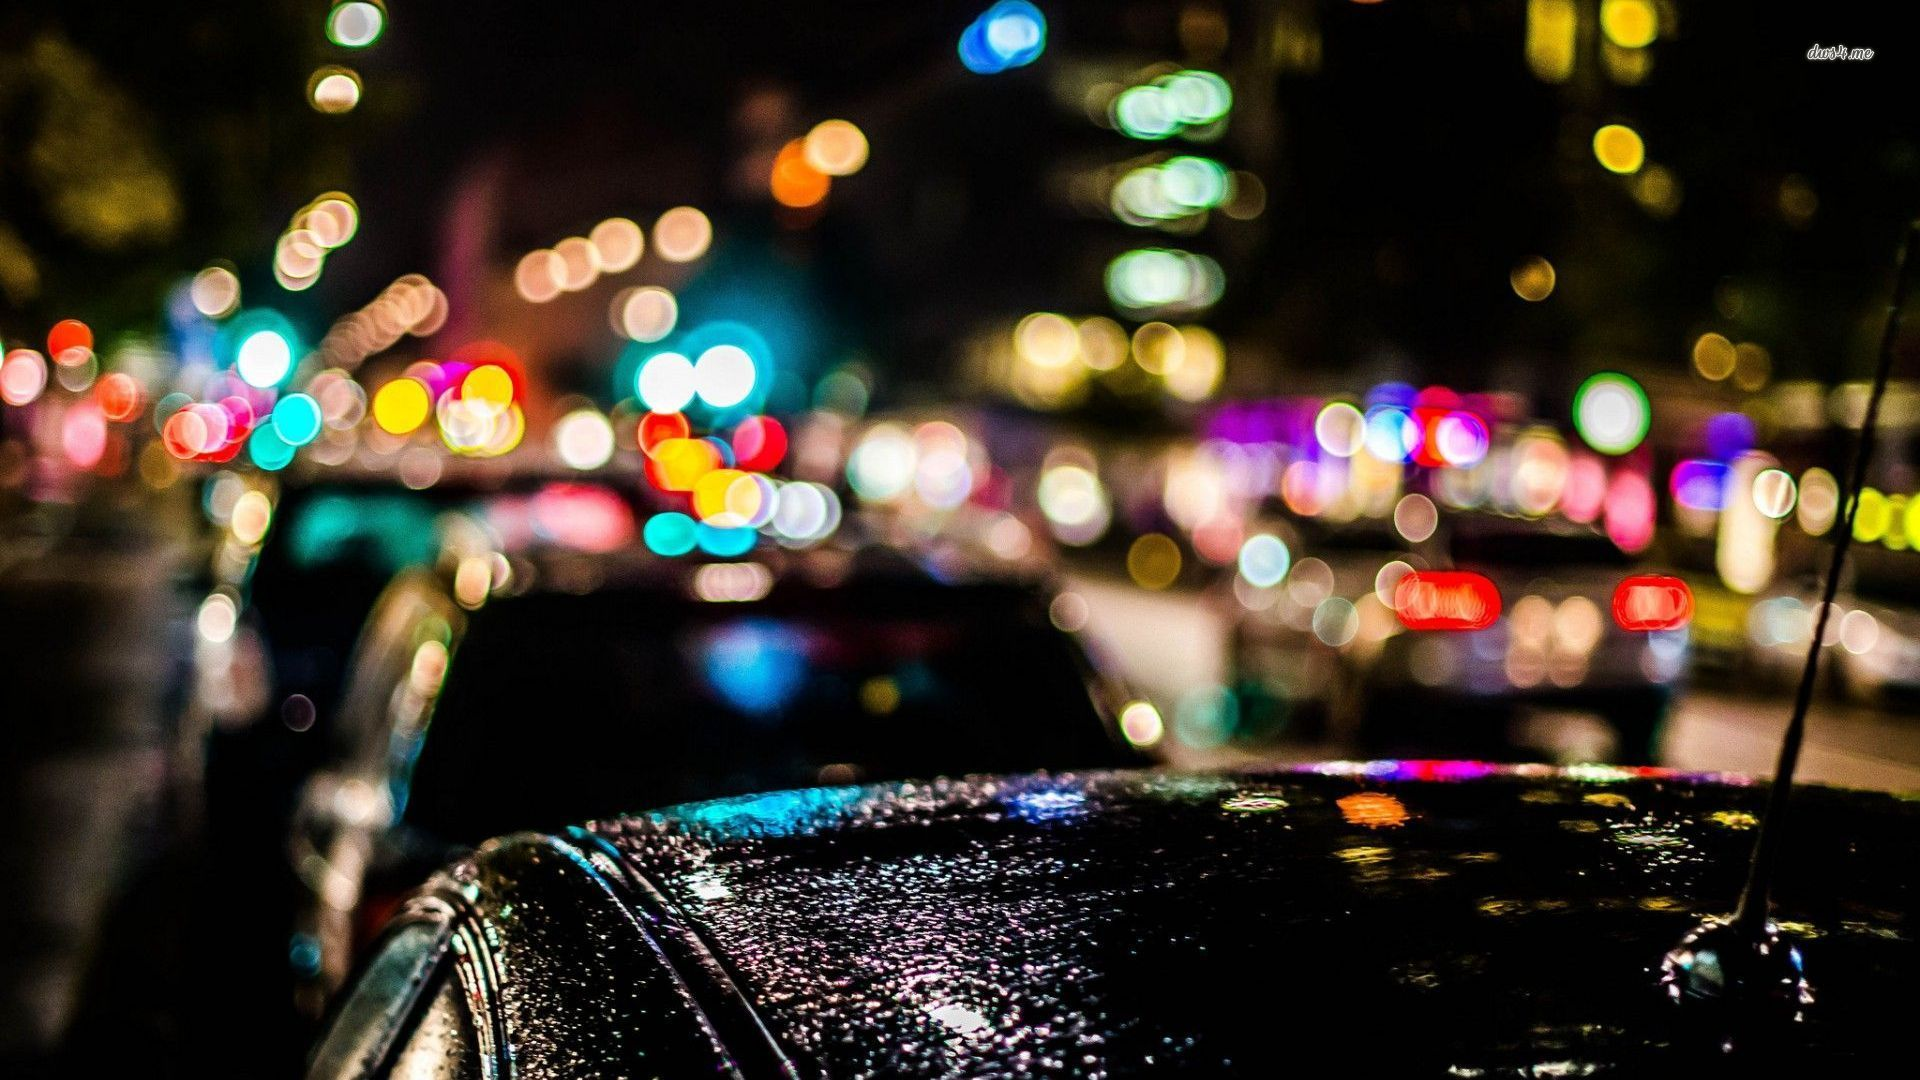 19127 Blurred City Lights Over The Cars 1920x1080